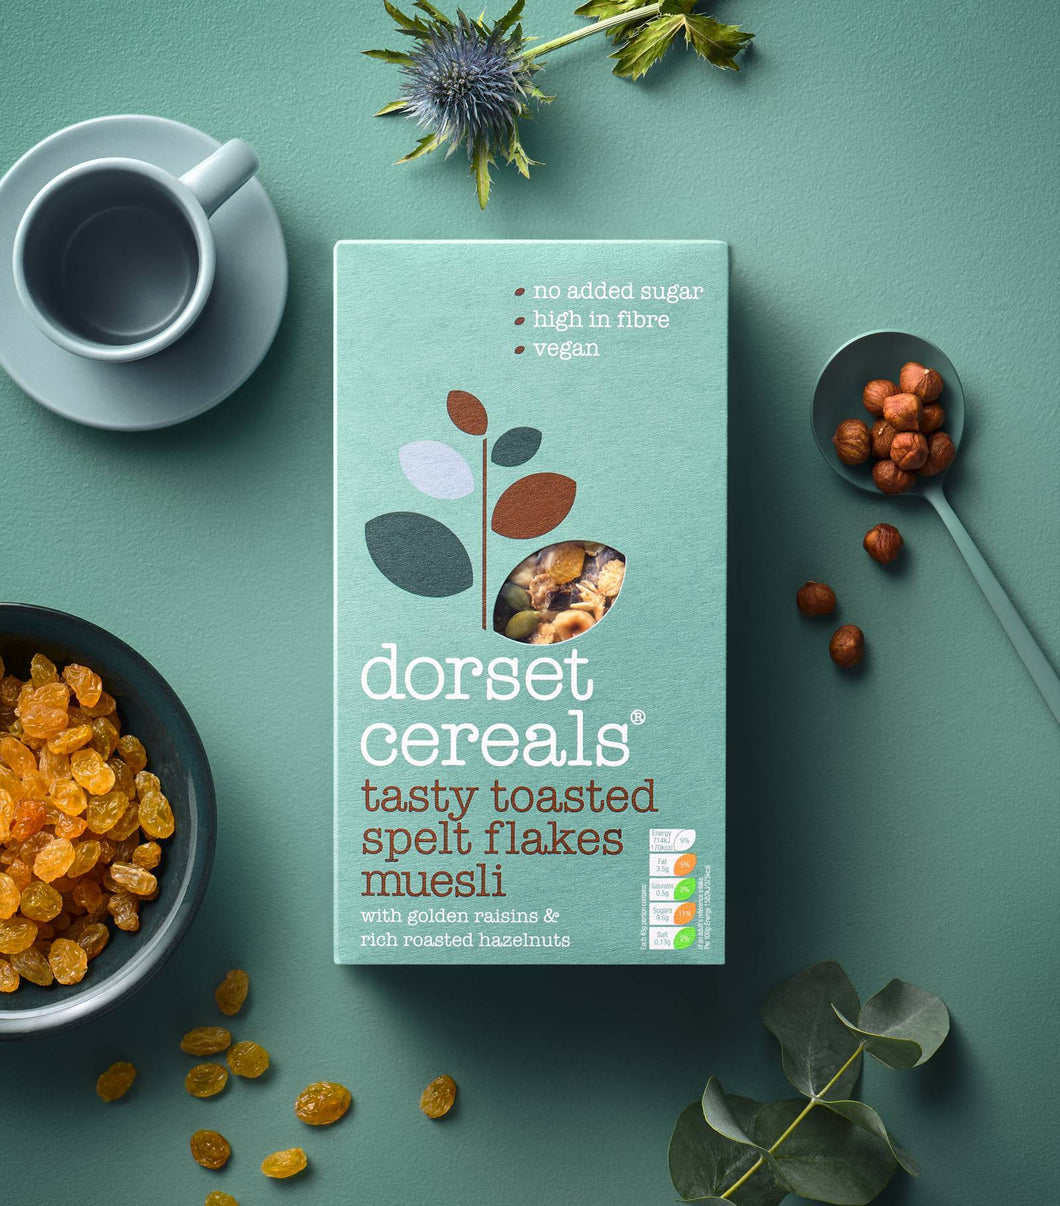 Dorset Cereals Tasty Toasted Spelt Flake Muesli - Home Pantry